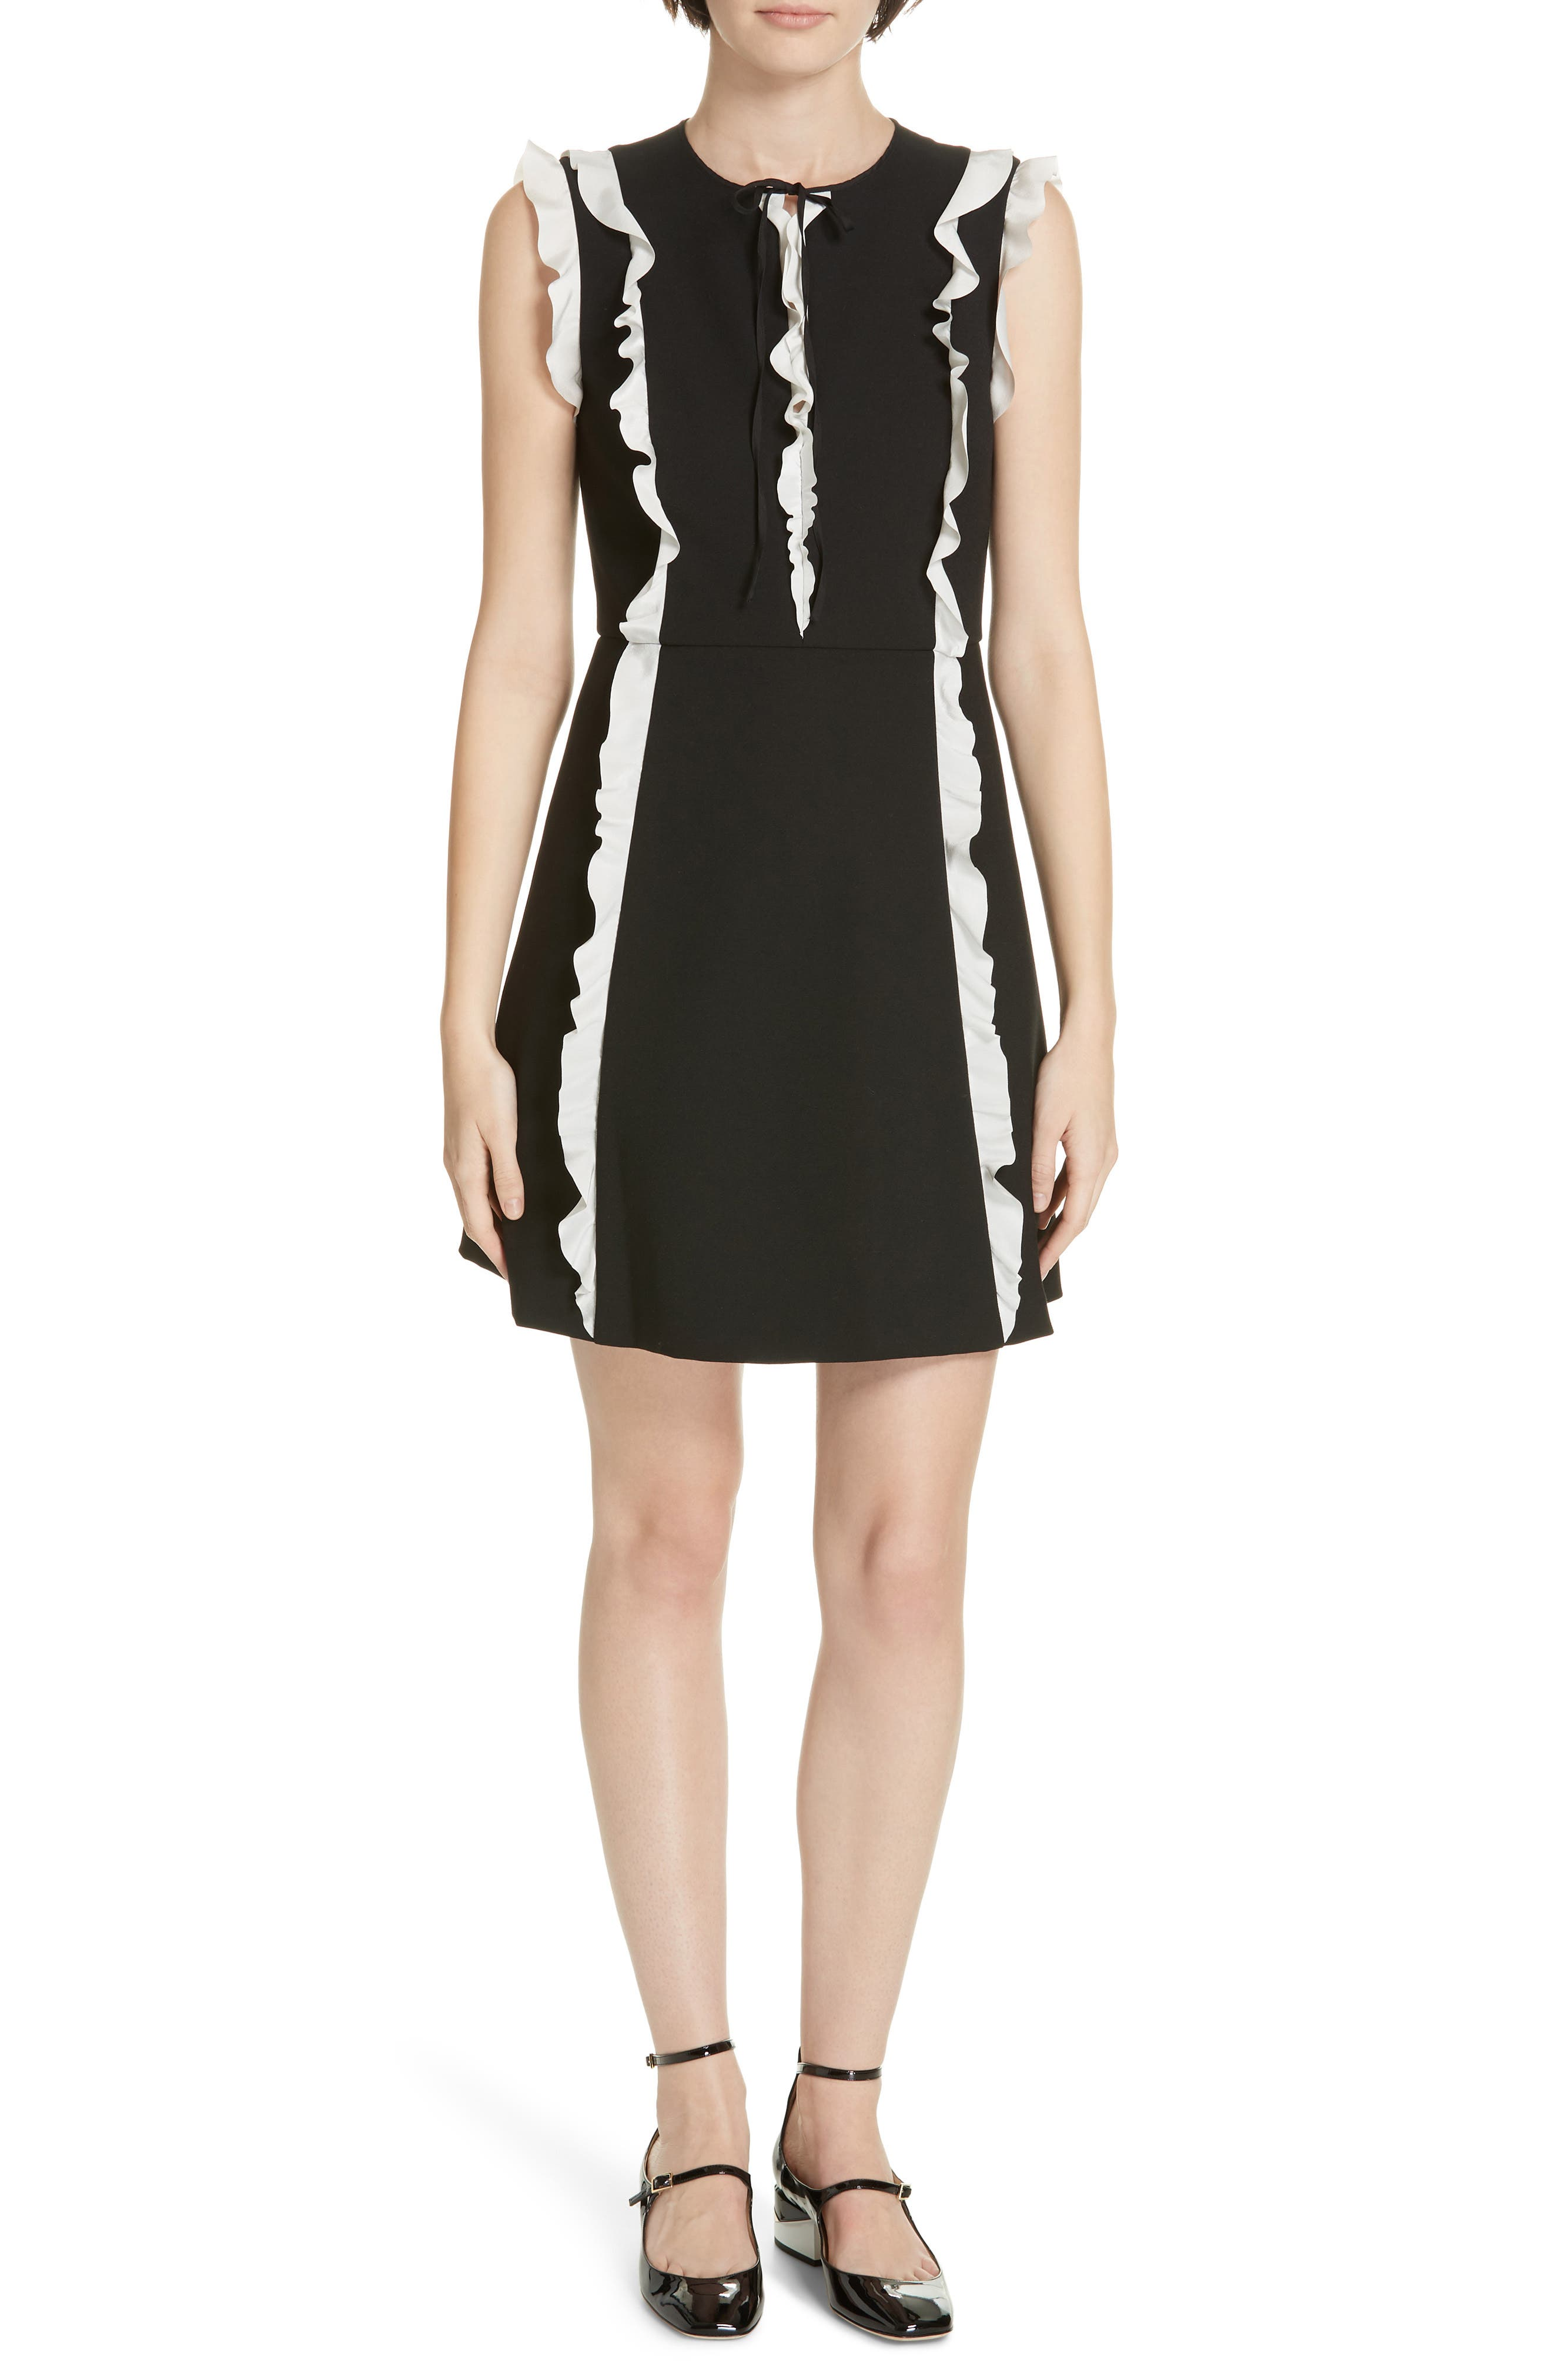 Red Valentino Contrast Ruffle A-Line Dress, US / 40 IT - Black